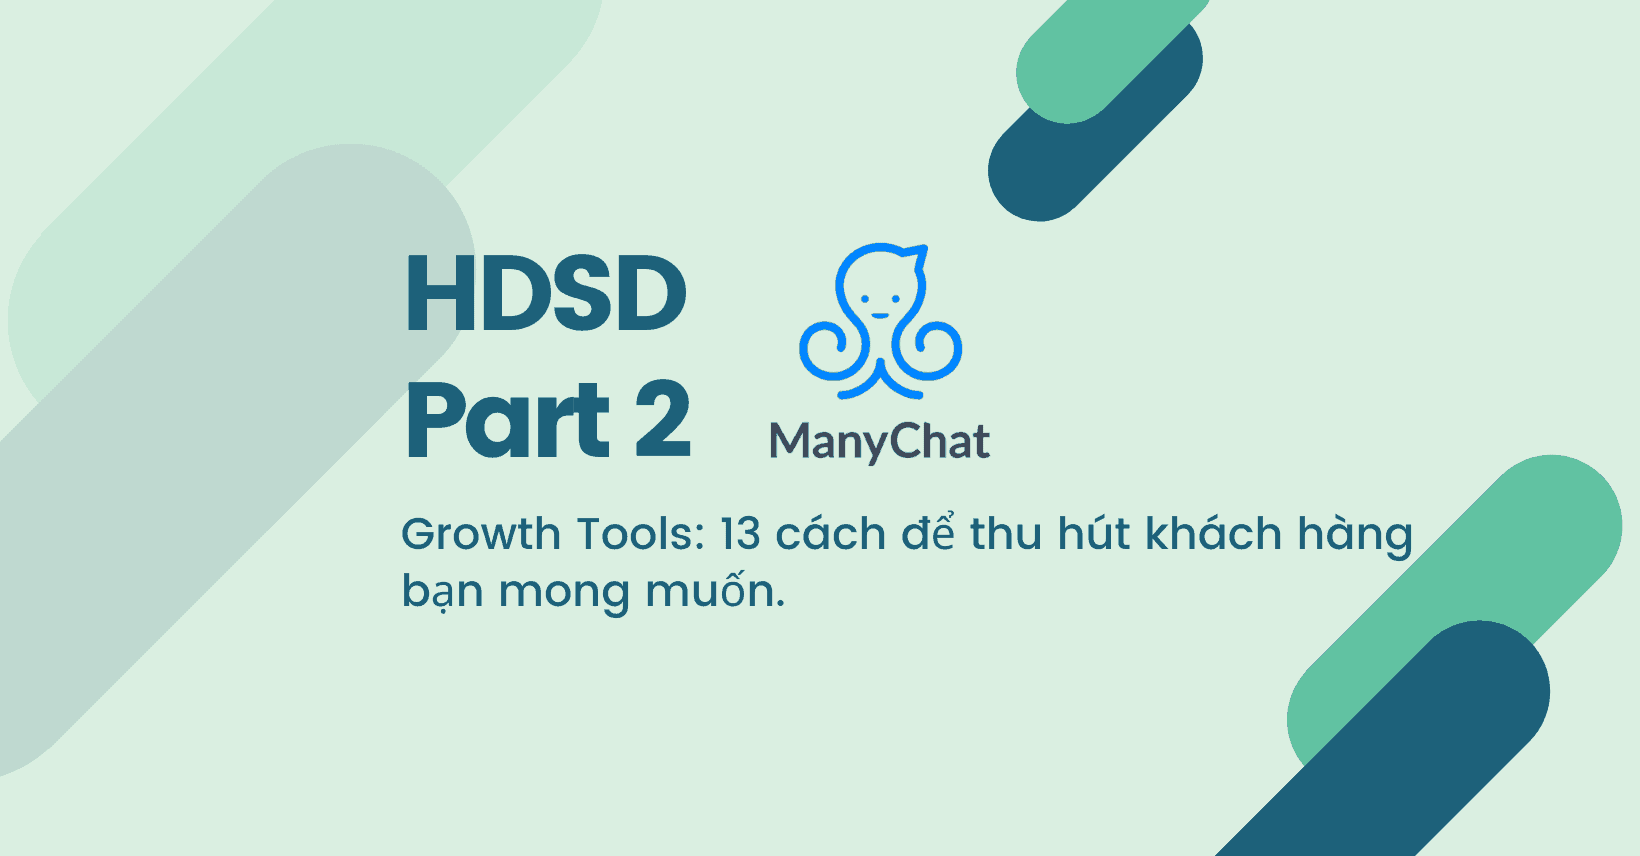 HDSD ManyChat part 2: Growth Tools